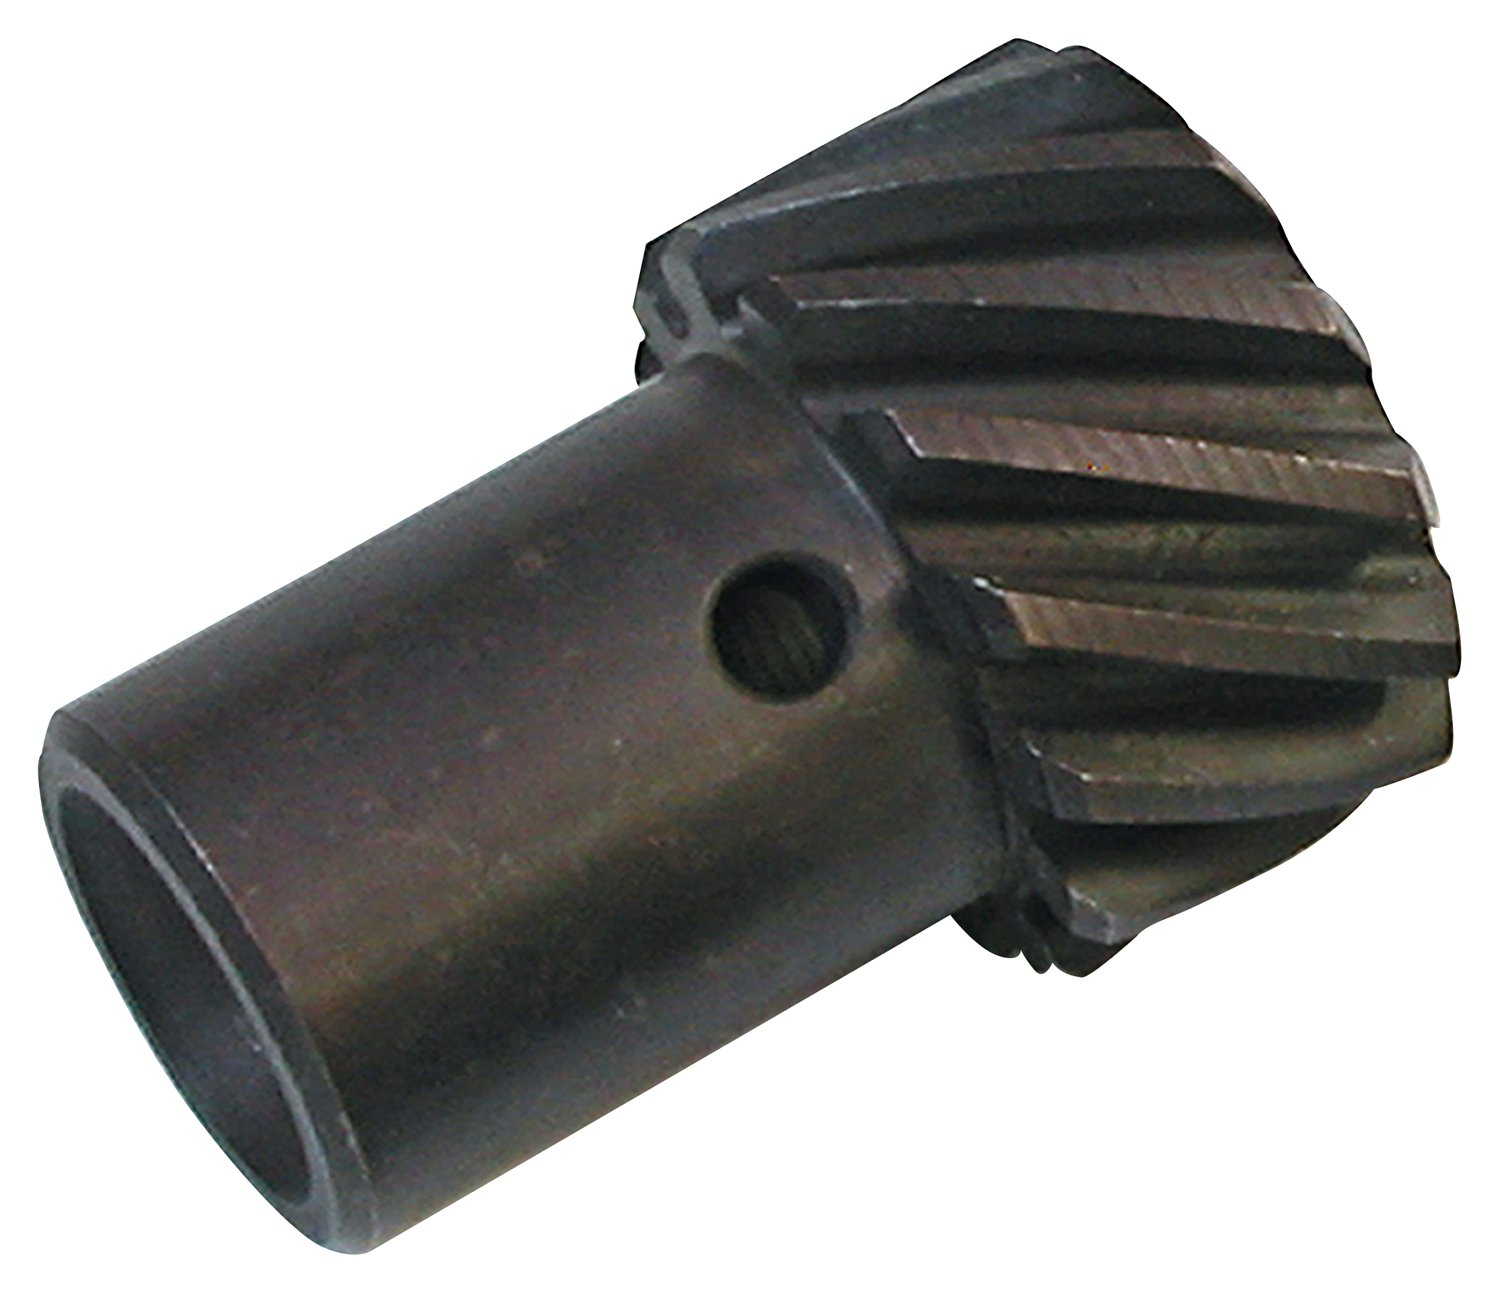 8531 - Iron Distributor Gear for MSD Chevy Distributor, .500 ID Image